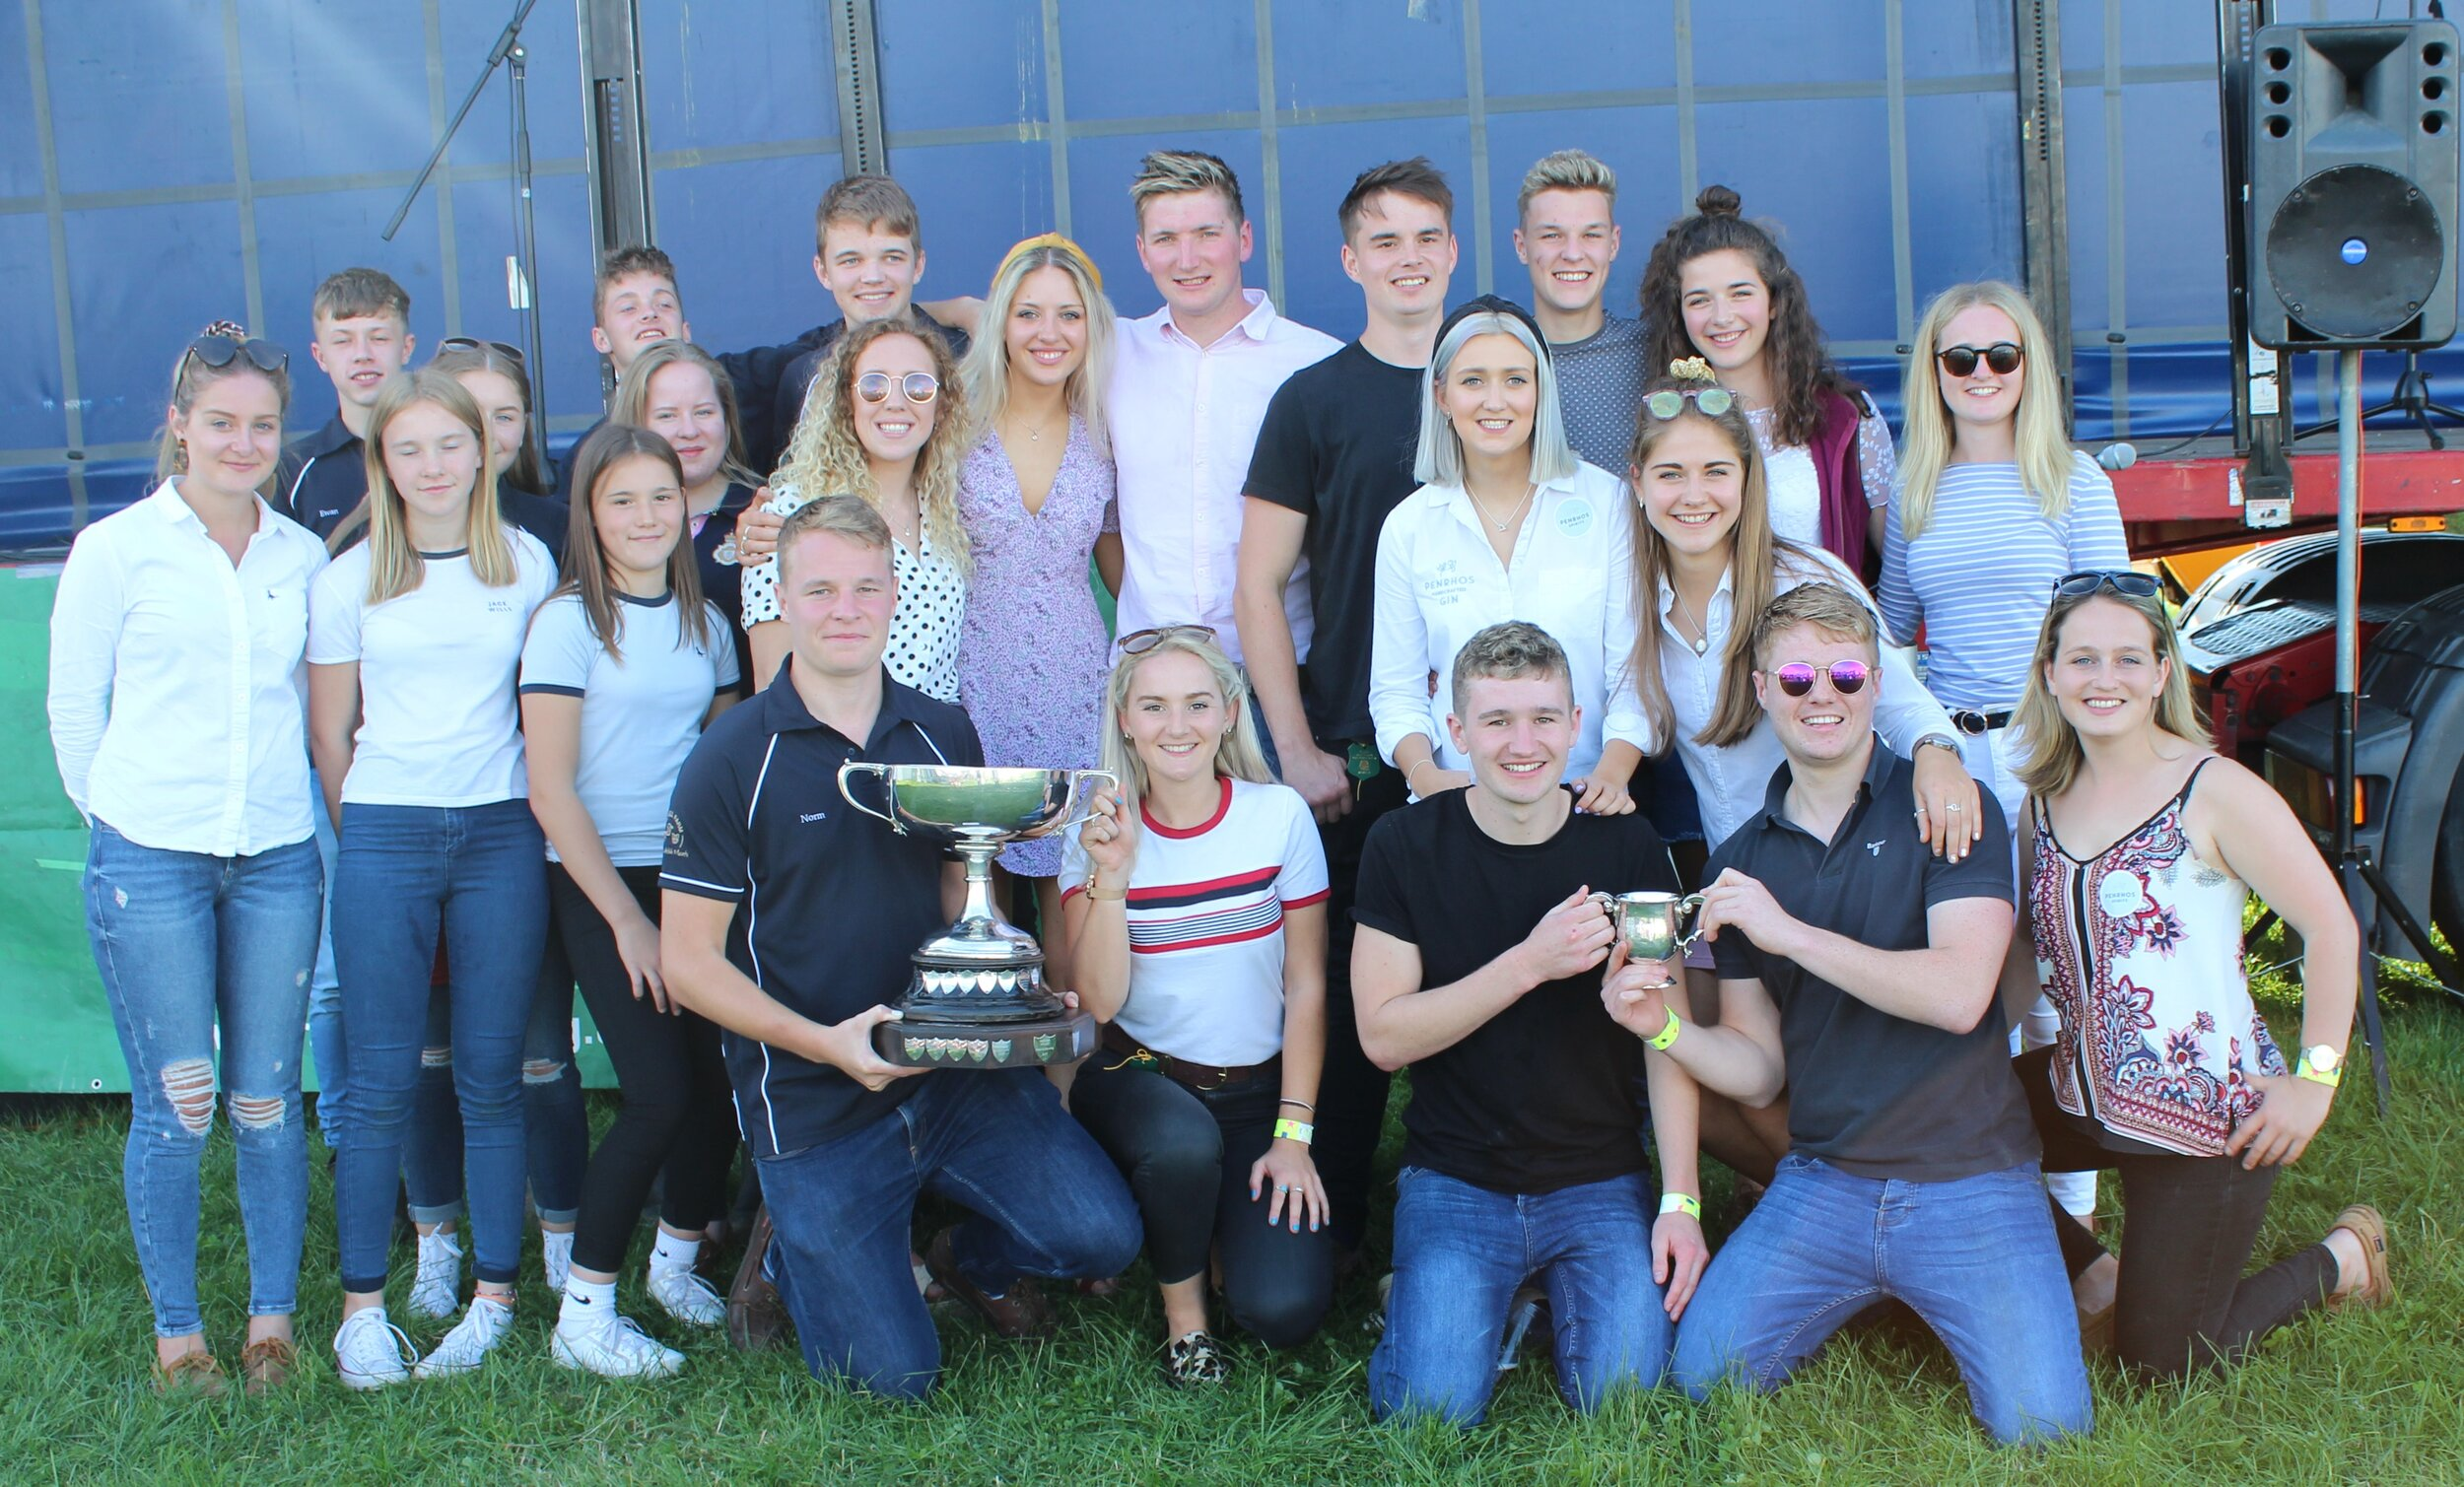 Radnor Valley YFC with the overall trophy.